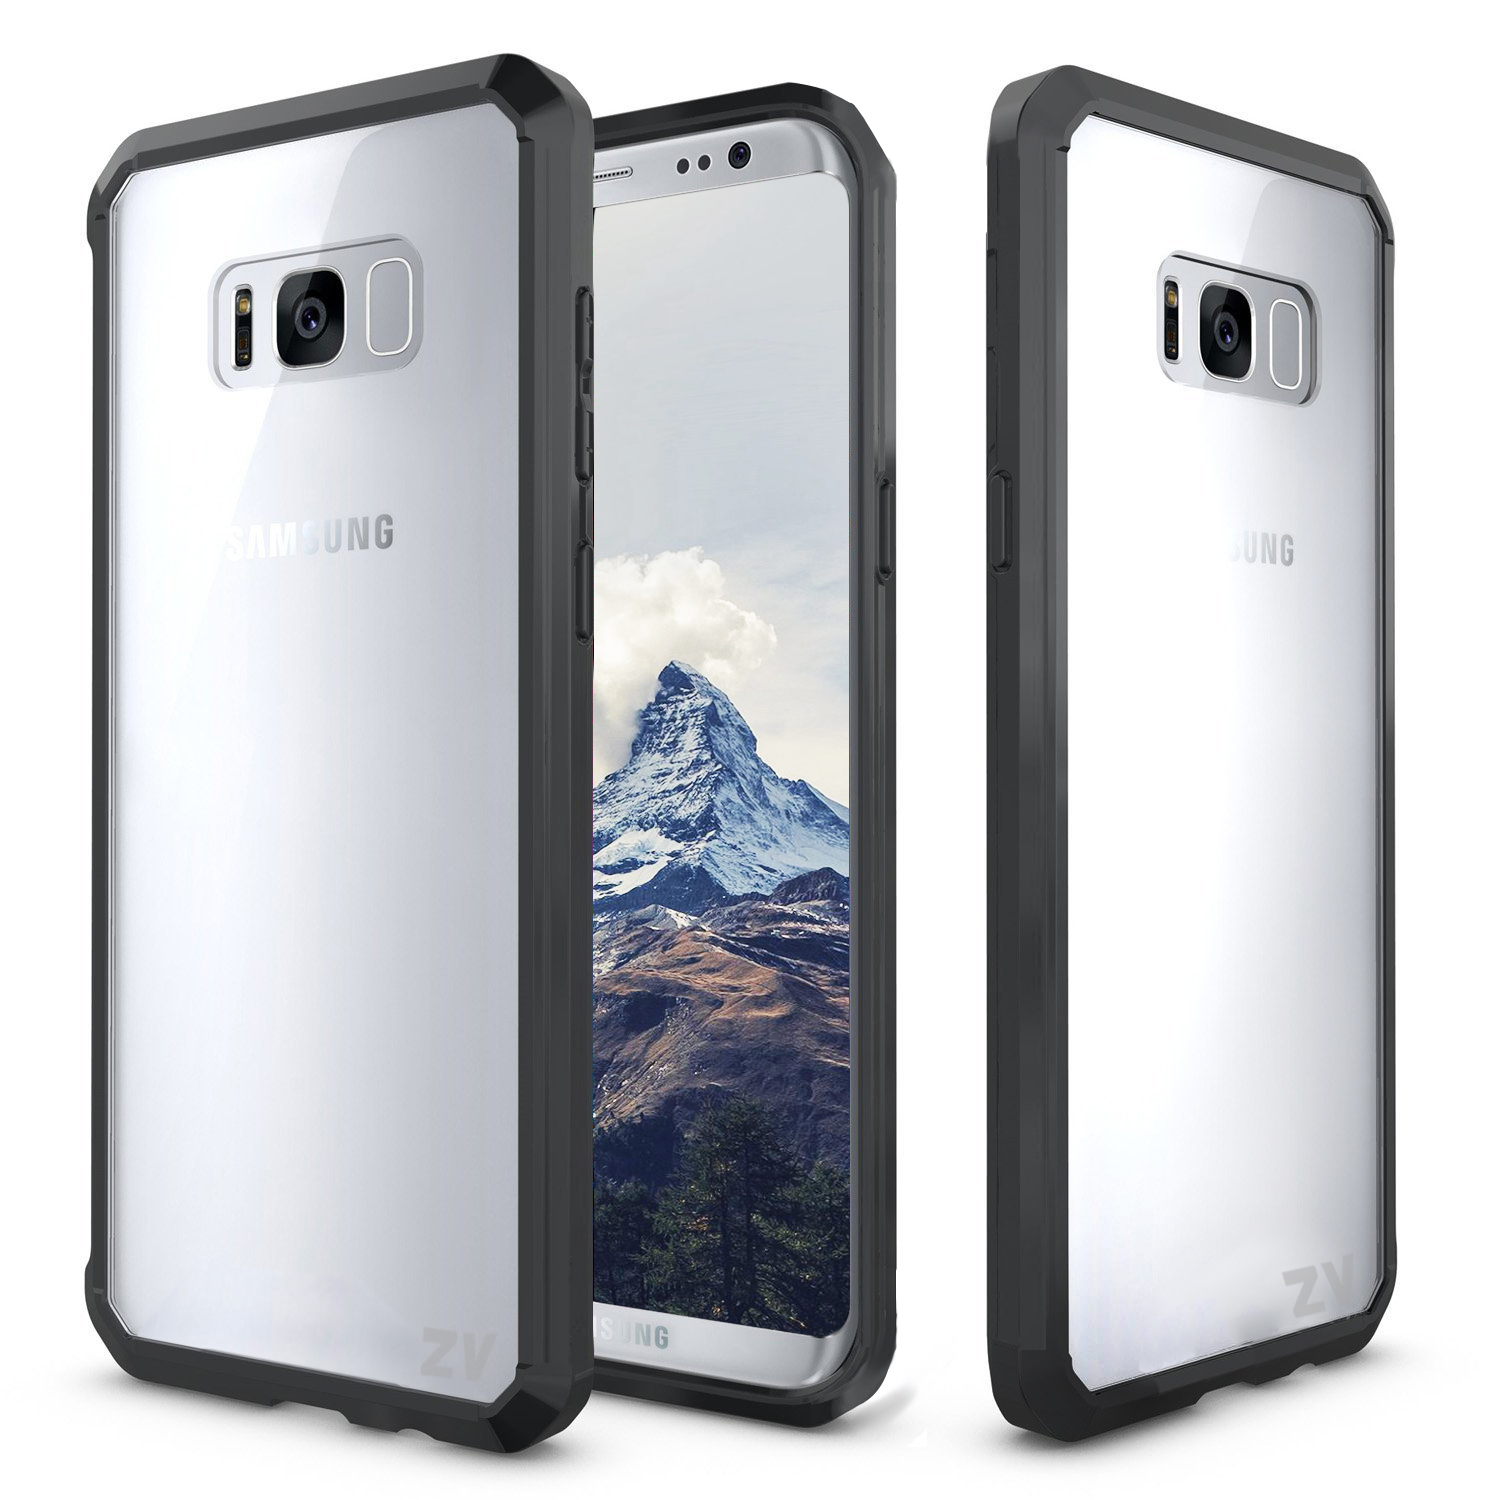 Samsung Galaxy S8 / S8 Plus Case, PC+TPU Cover- Slimfit w/ Heavy Duty Protection